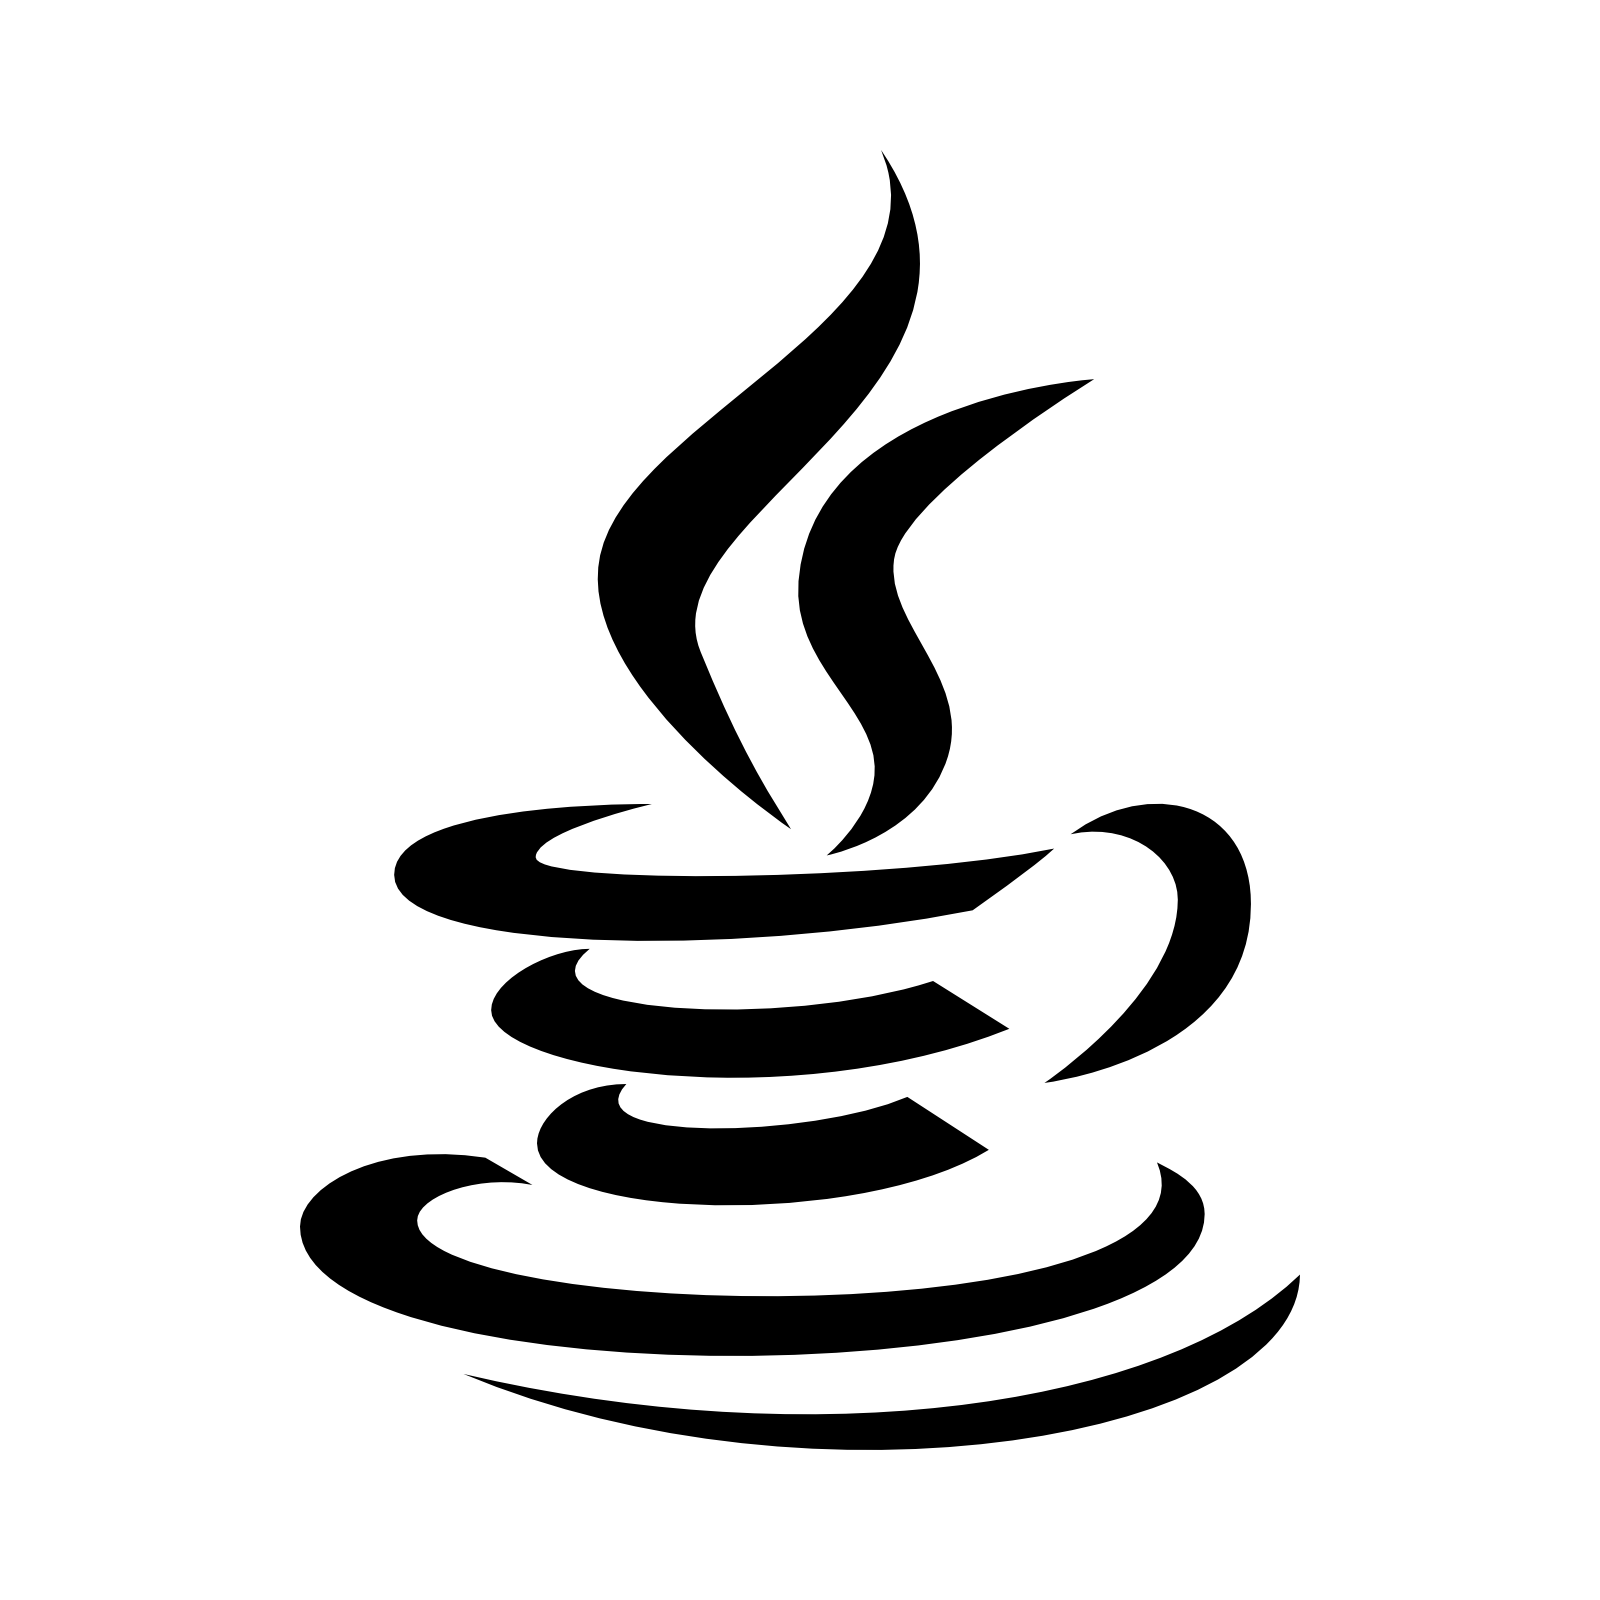 Java PNG - 16568